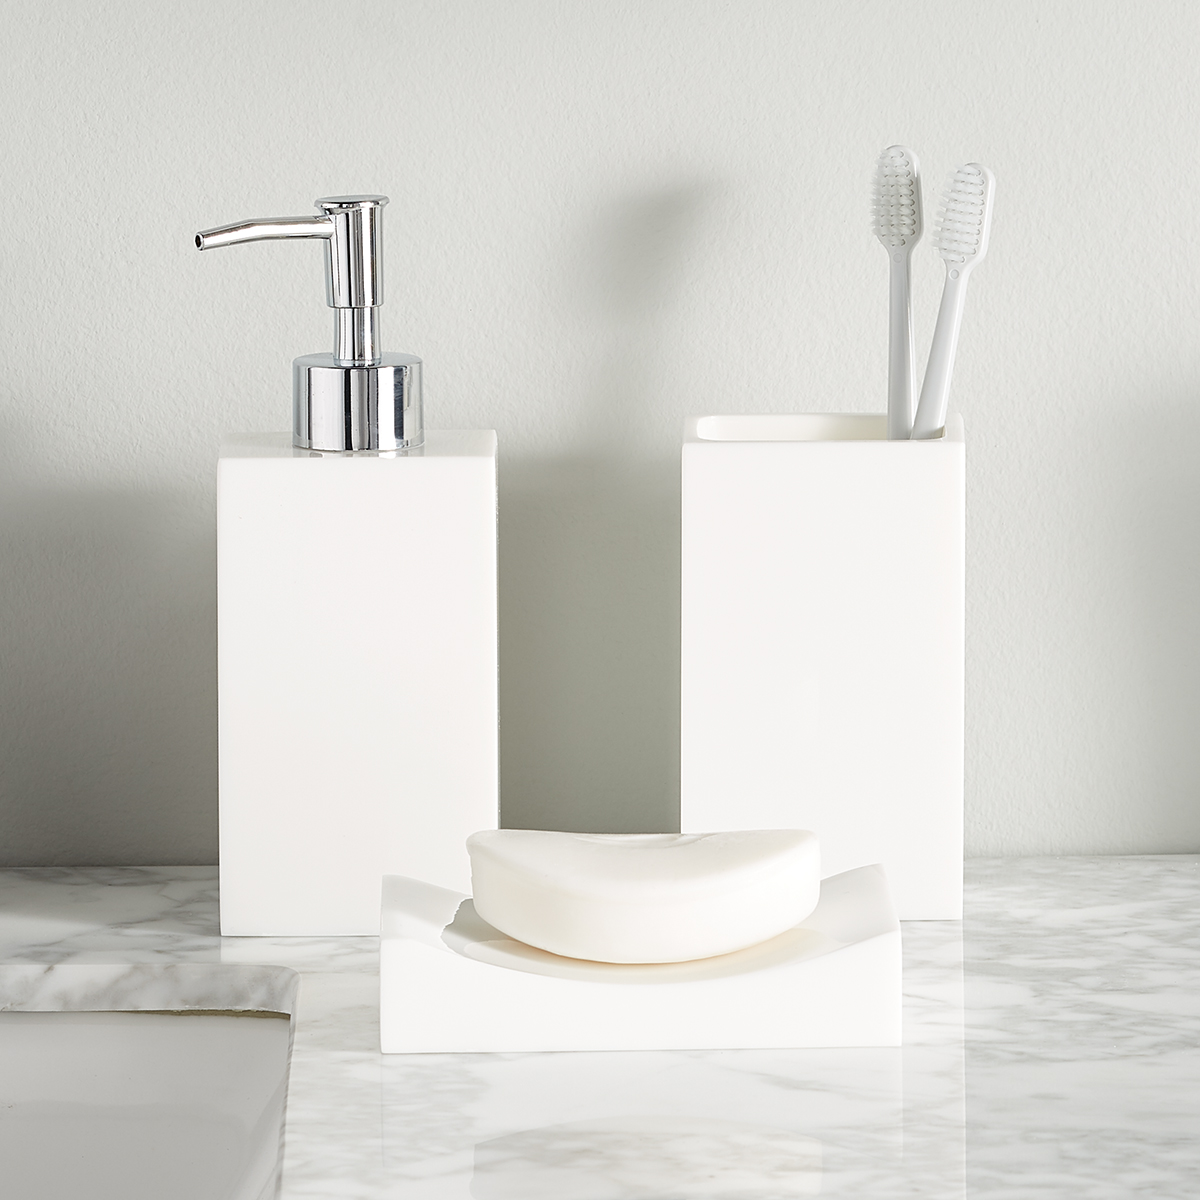 White Bathroom Accessories The Container Store